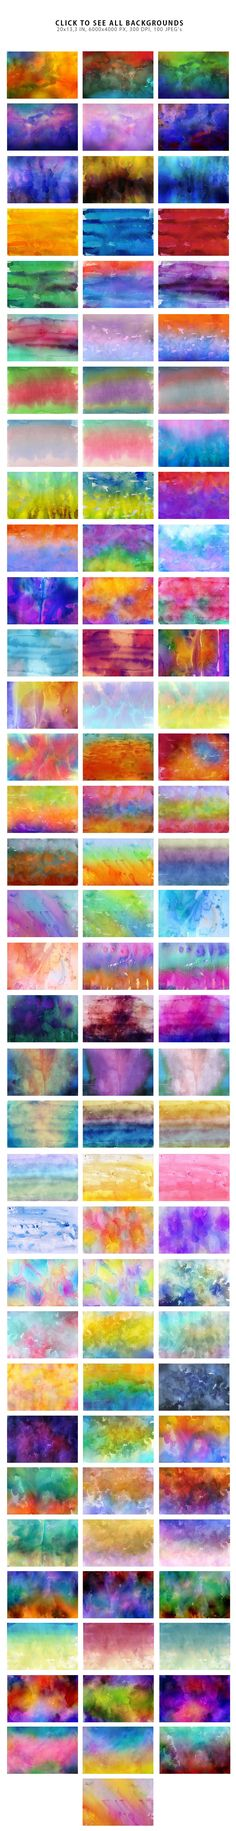 50% OFF Watercolor Backgrounds 3 by ArtistMef on @creativemarket